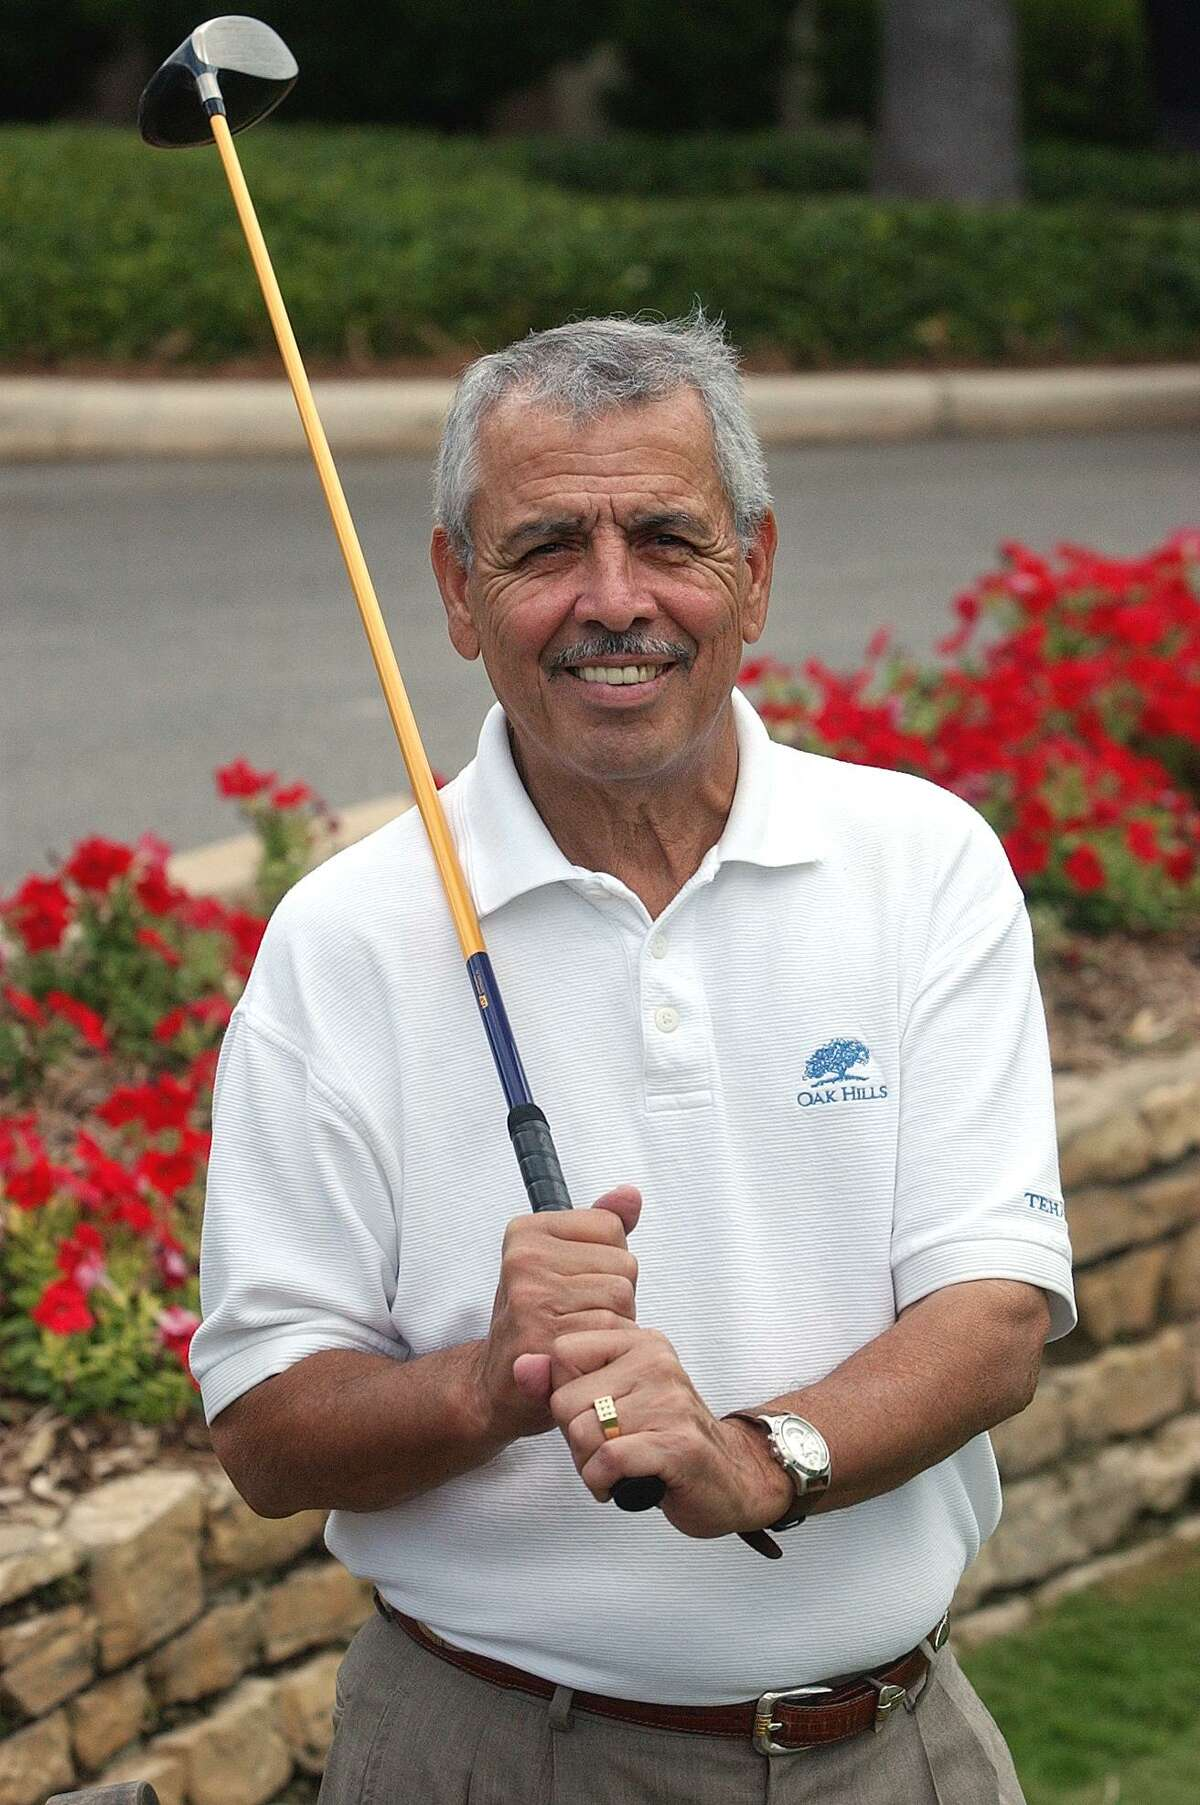 Ray Cevallos gets ready to tee off at Oak Hills Country Club Tuesday, June 4, 2002. Photo by Tom Reel/Staff